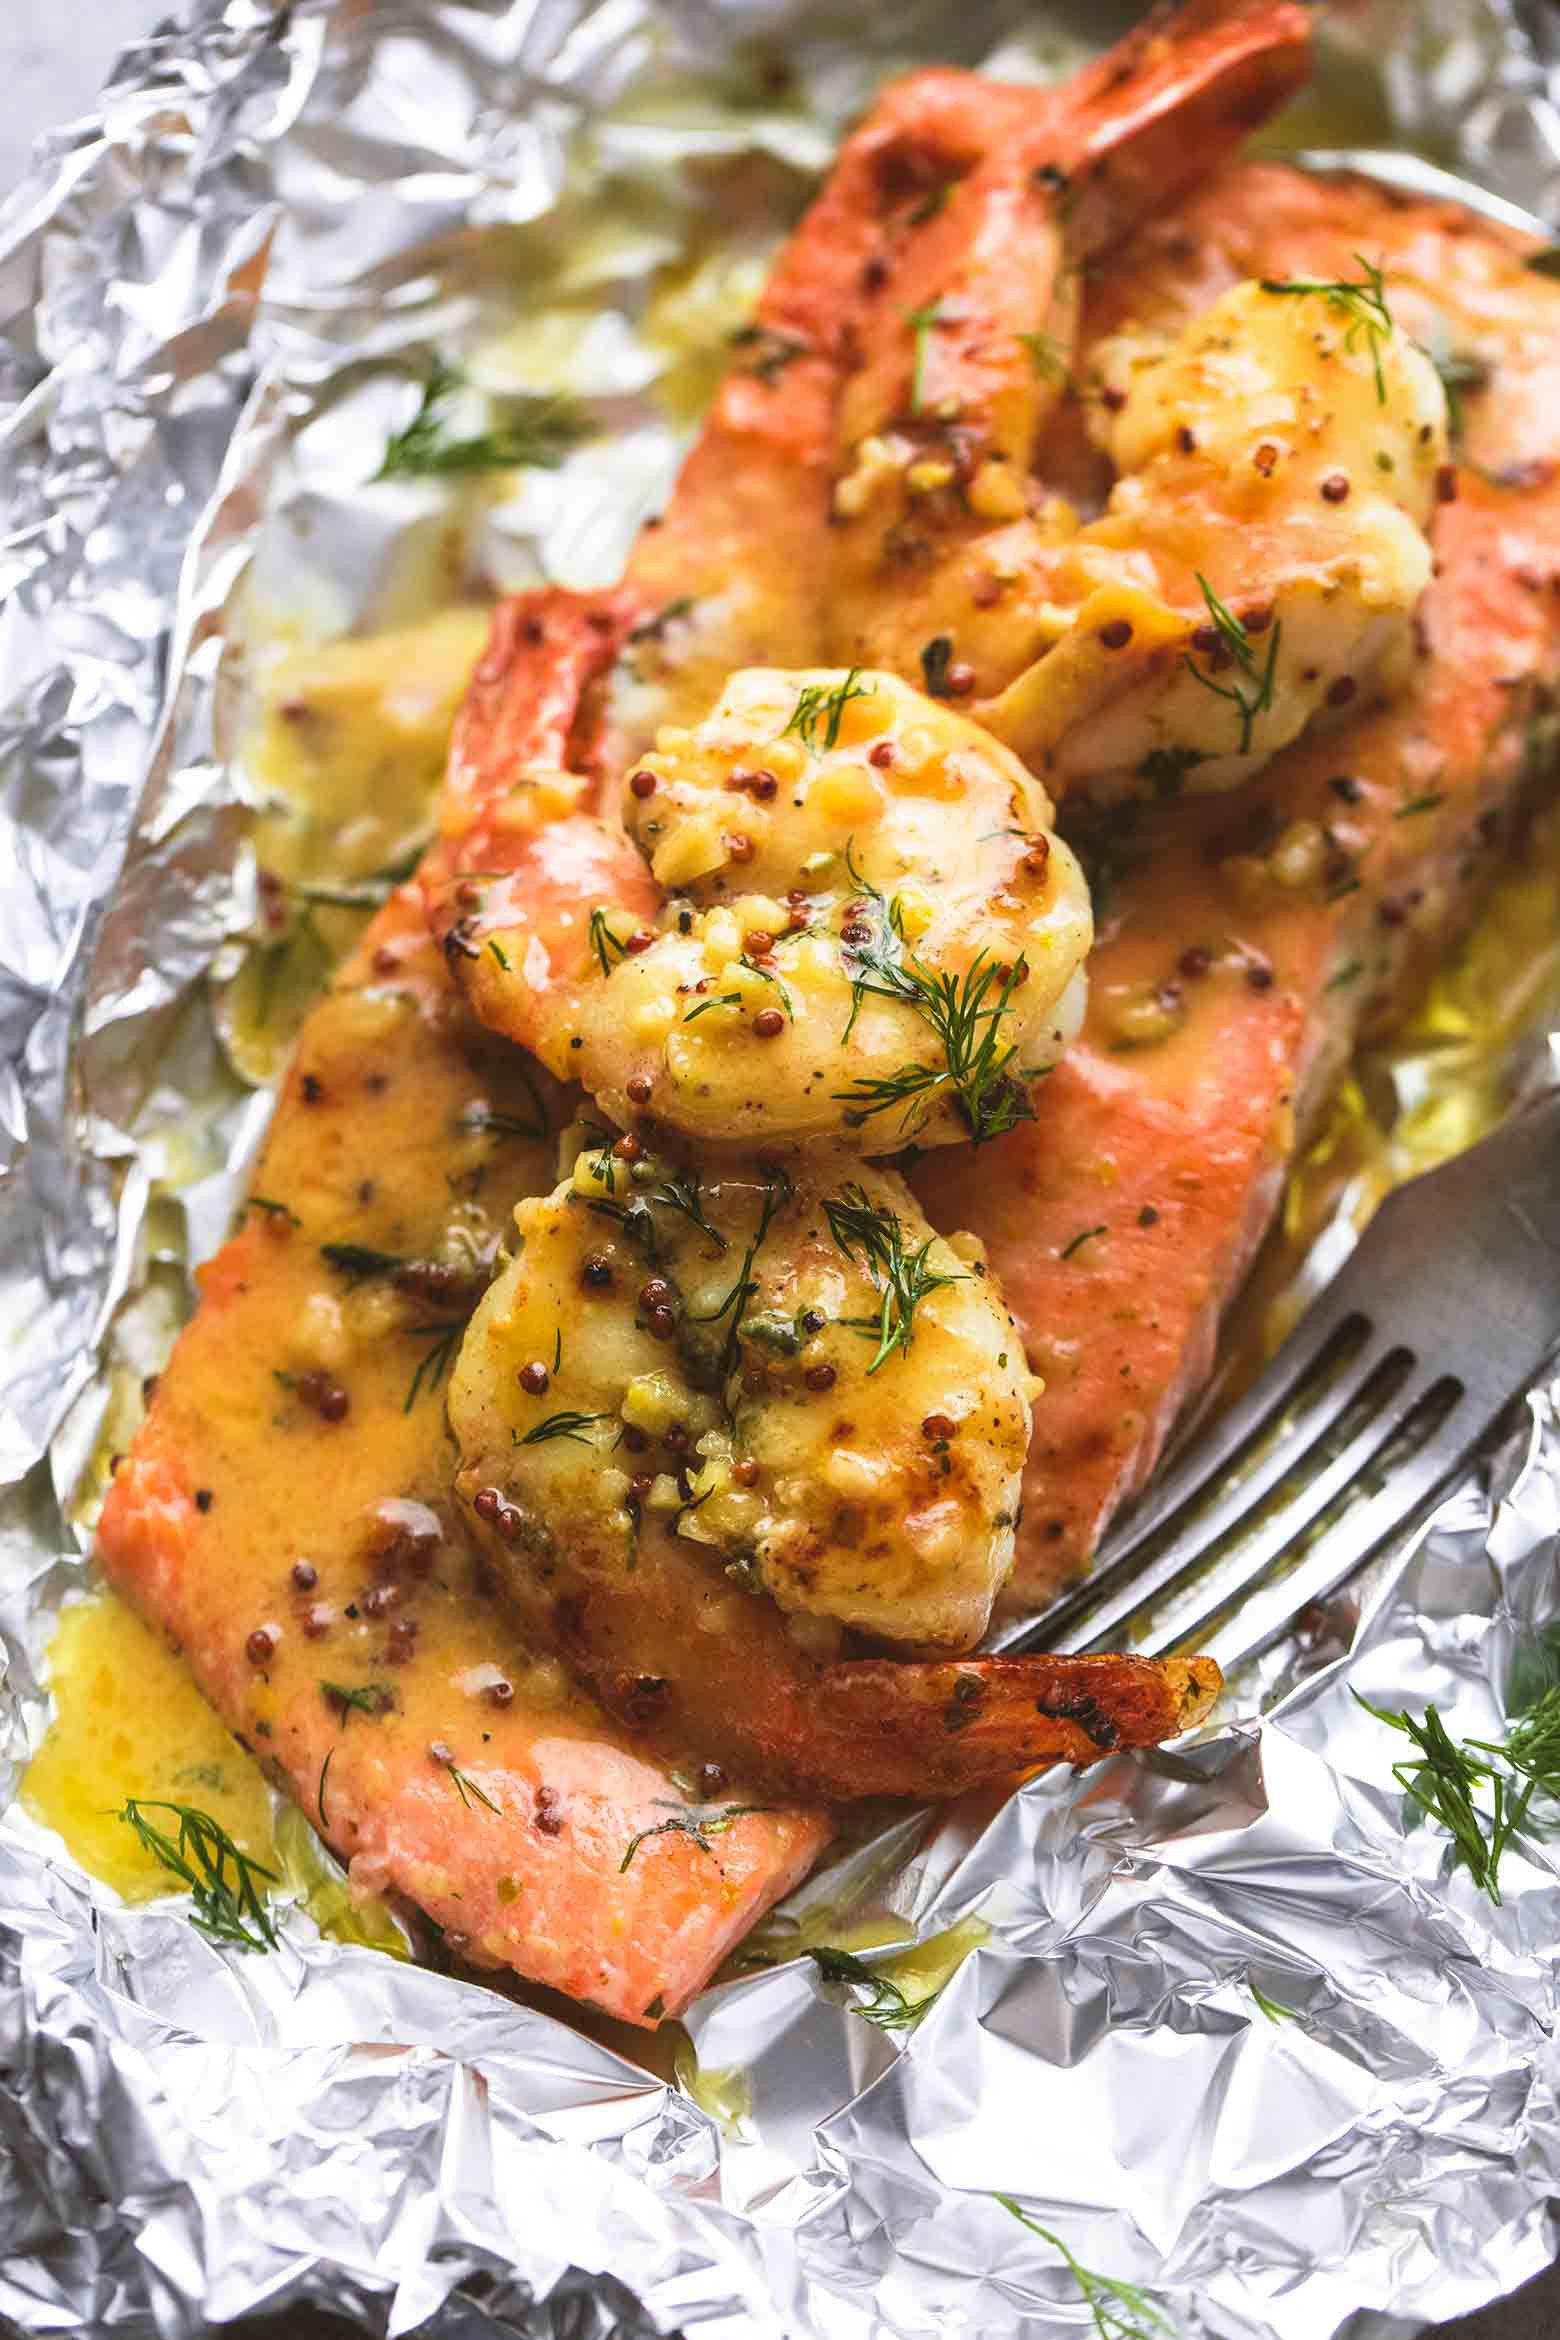 garlic-dijon-shrimp-salmon-foil-packs-103.jpg